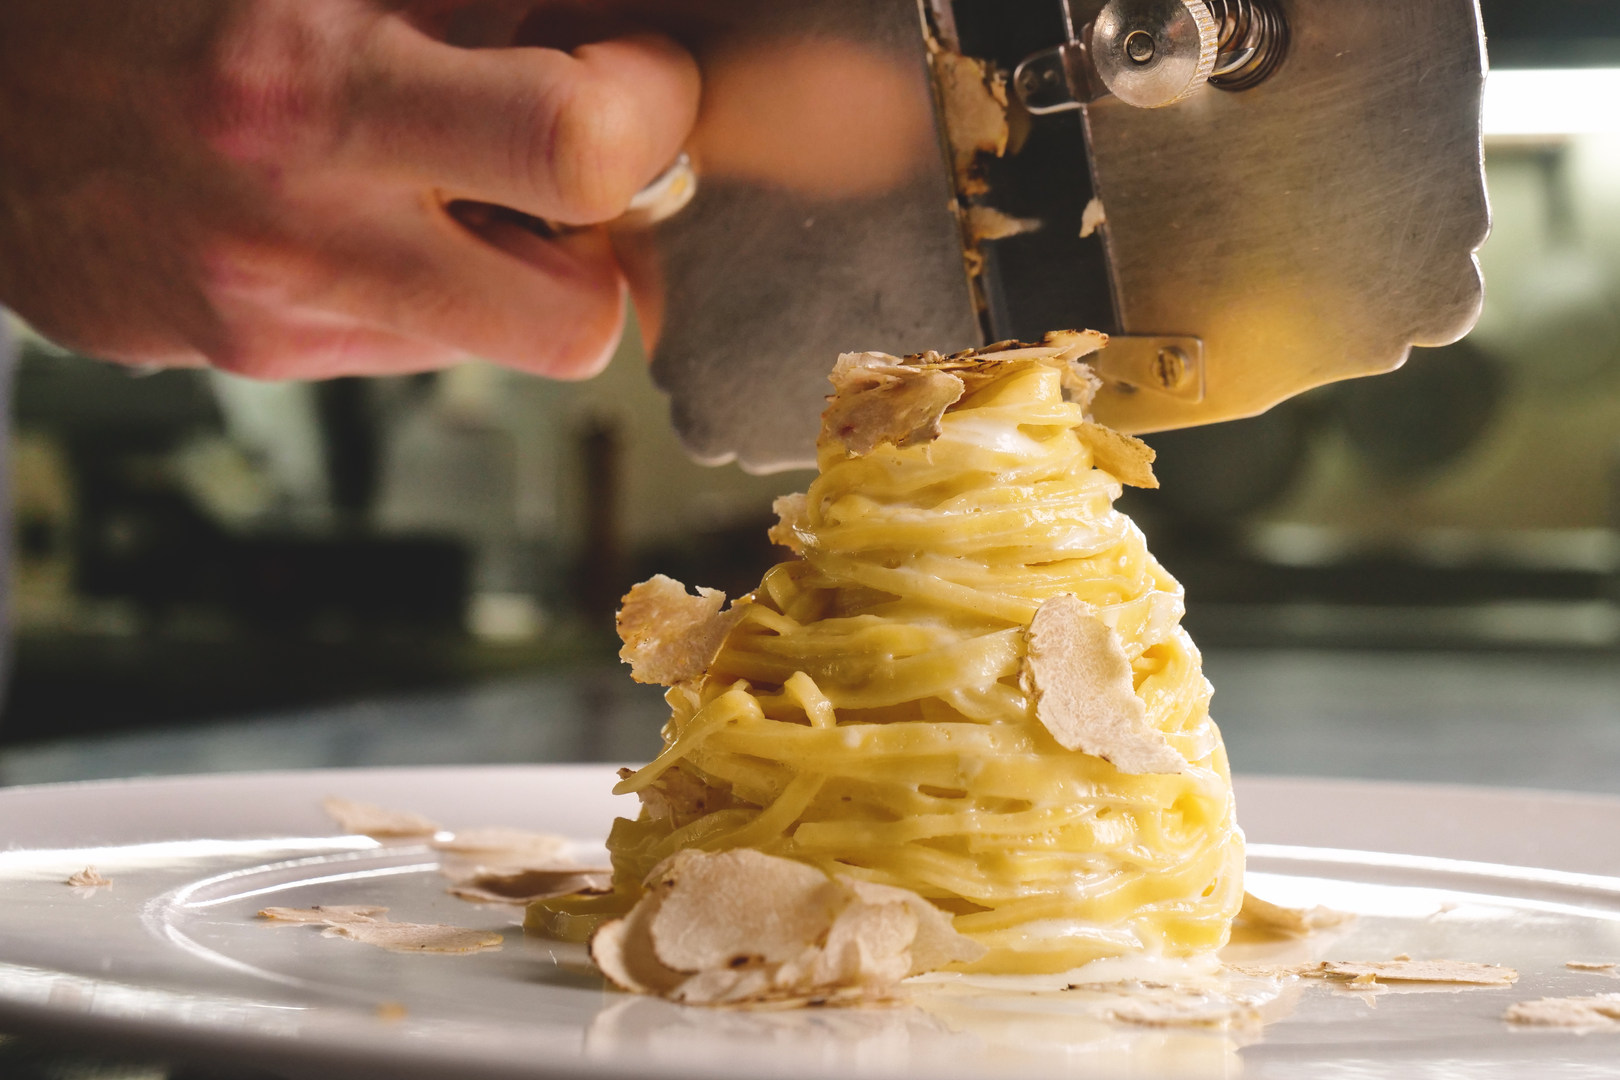 Egg pasta dish, typical Italian, with fi